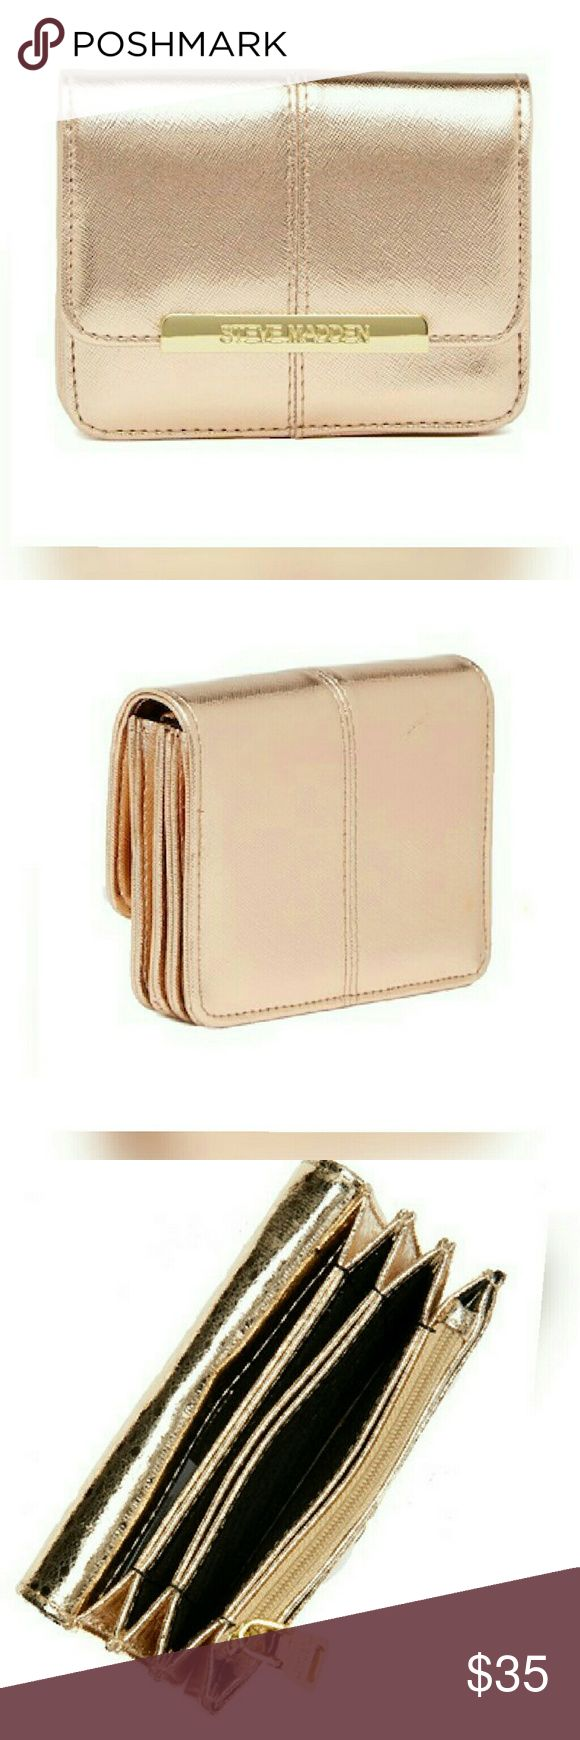 """♡Steve Madden accordion waĺlet (2piece set)♡ Rose Gold, Steve Madden accordion wallet set. Fold over flap with magnetic closure..  4.25"""" H × 5.25"""" W ×1"""" D... GRAB ONE NOW! #YOUwillLovethese! Price is FIRM 💲💲 everything is marked on an already low sale price.. Thank you all for the gracious kindness..❤ Steve Madden Bags Wallets"""